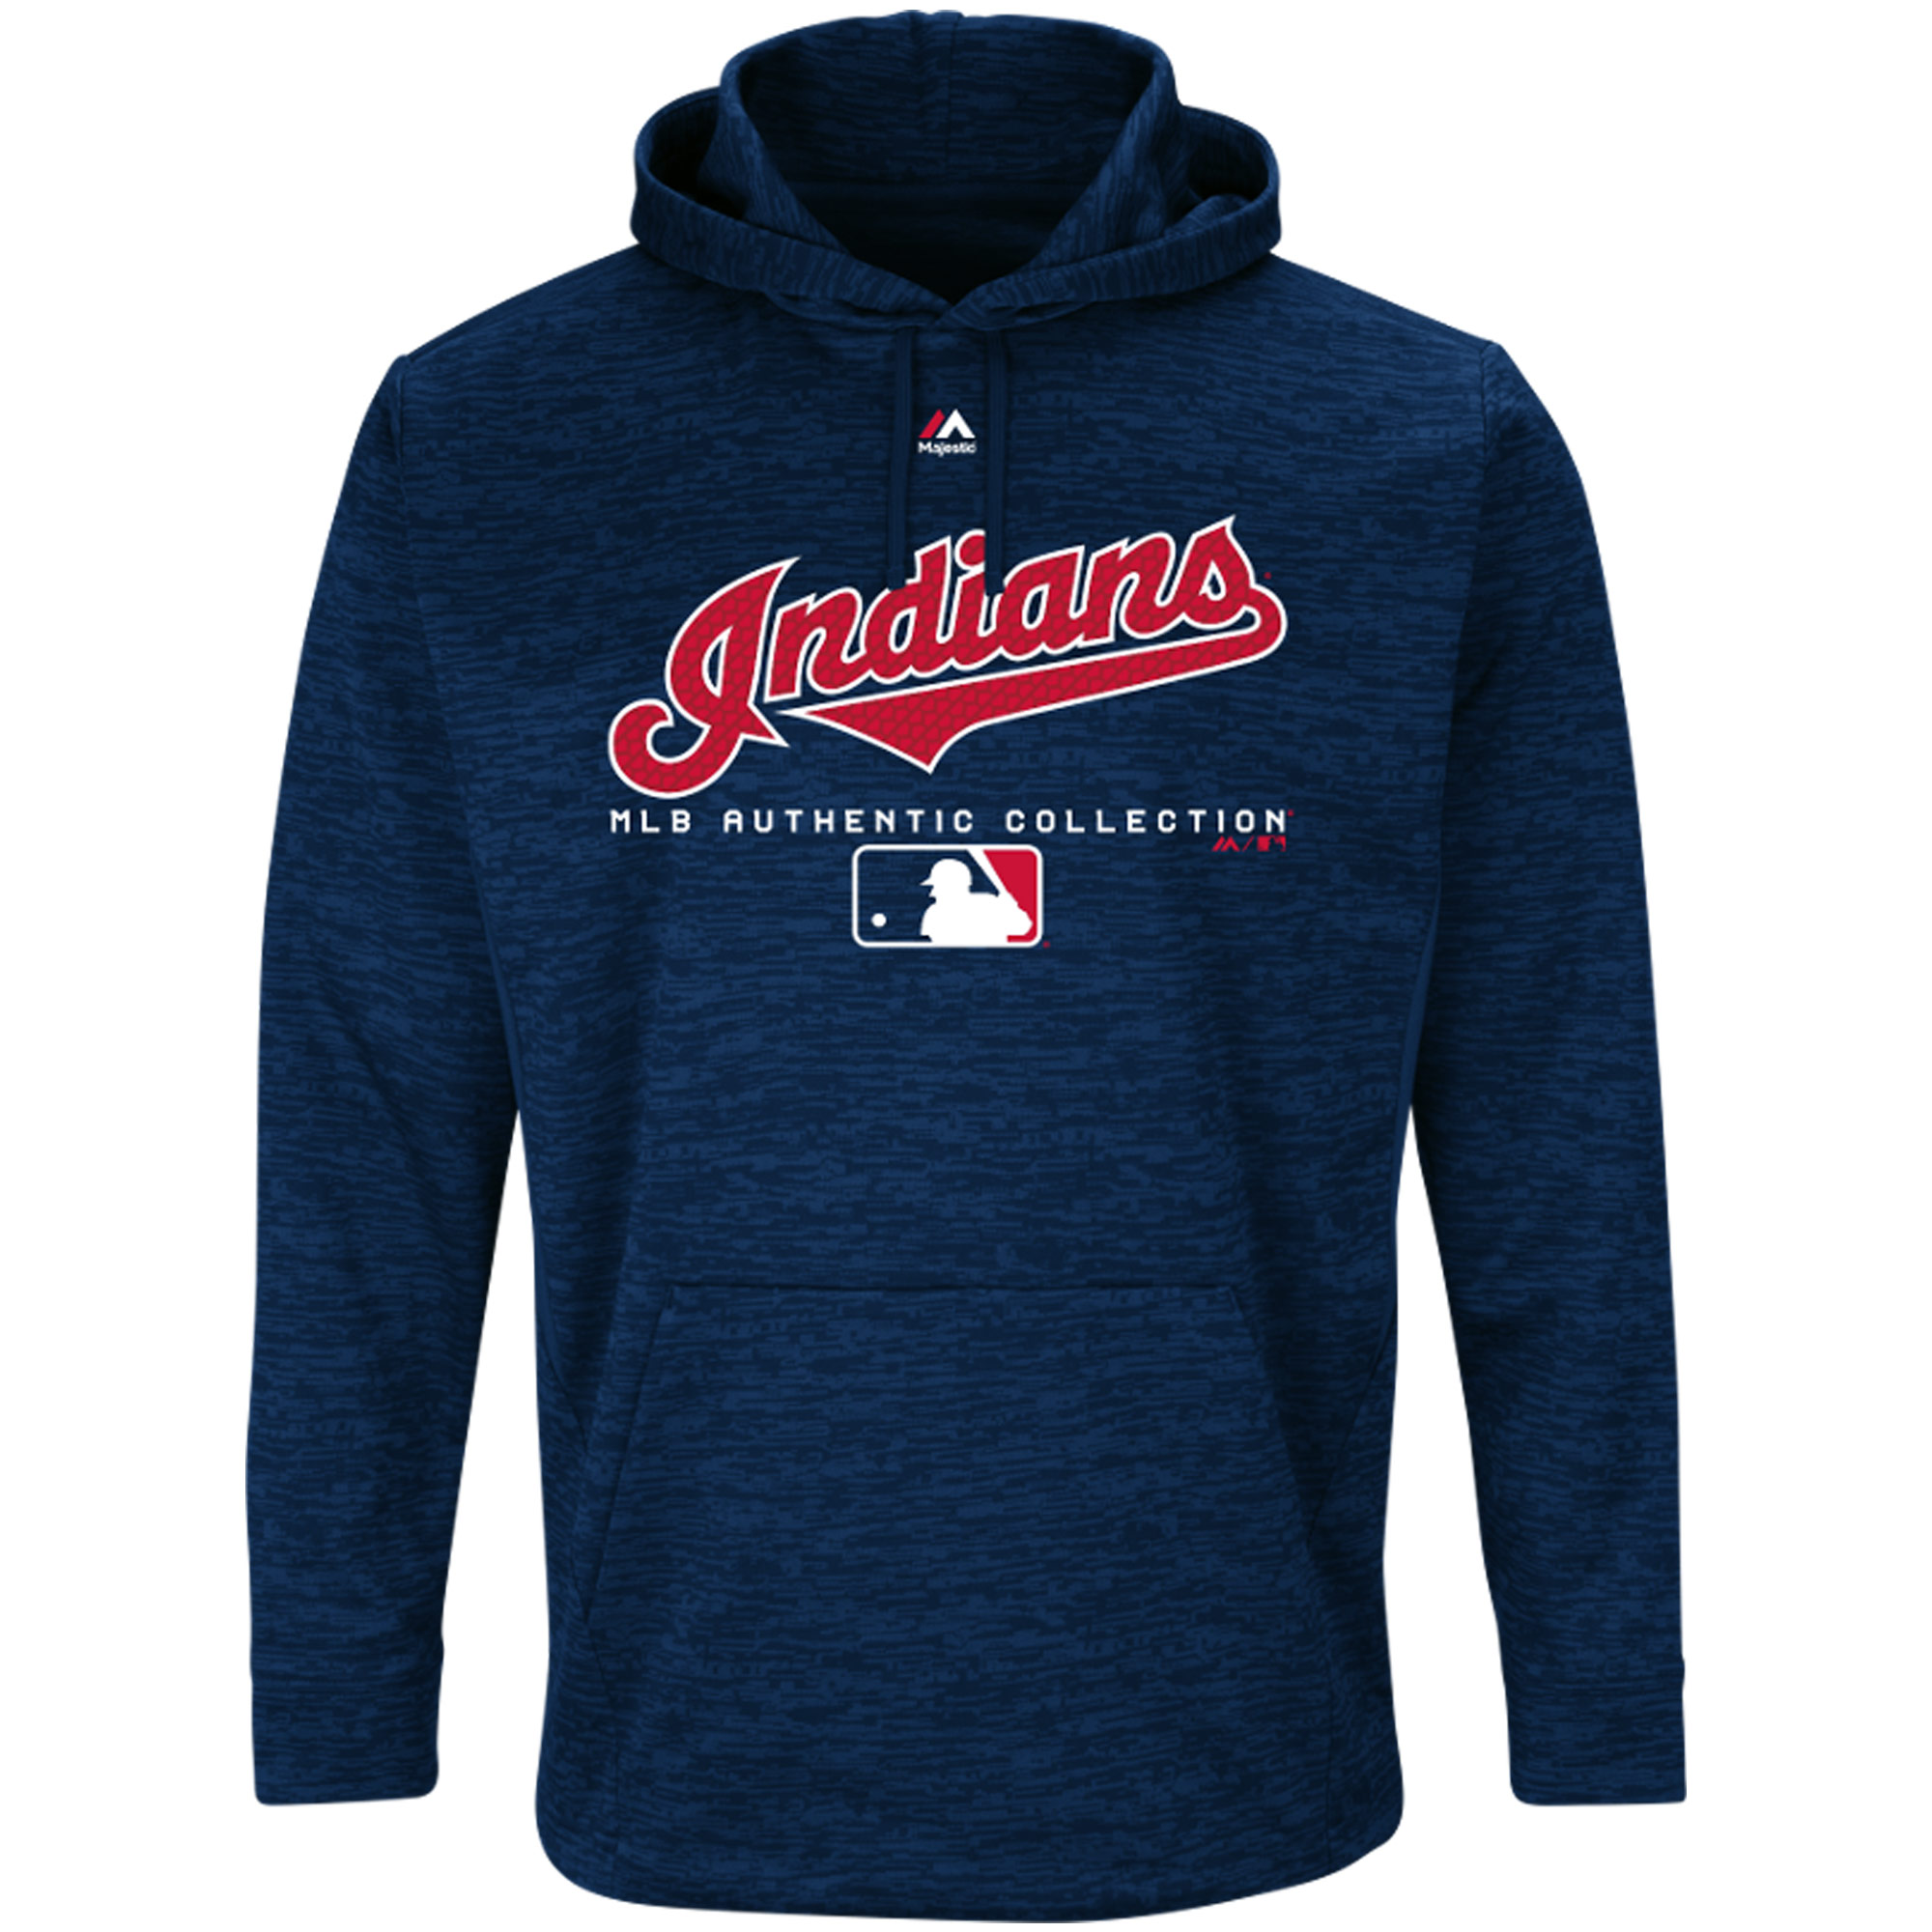 Cleveland Indians Majestic Authentic Collection Team Drive Ultra-Streak Fleece Pullover Hoodie - Navy